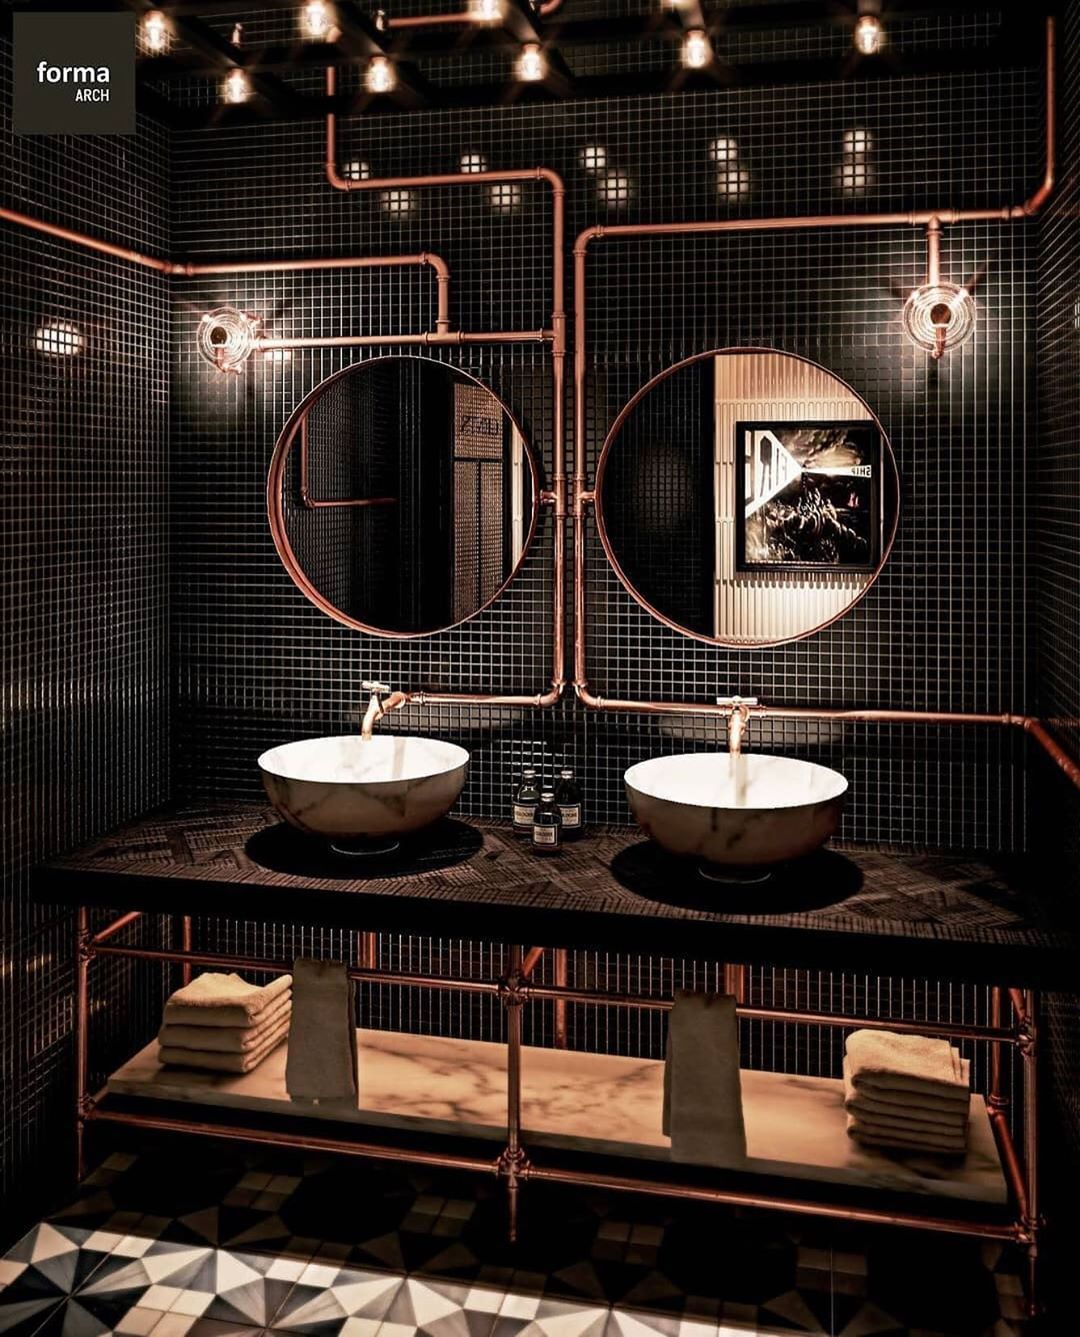 Luxury Interior By Aither On Instagram What Are Your Thoughts About The Bathroom Decor Comment Be Restroom Design Washroom Design Restaurant Bathroom